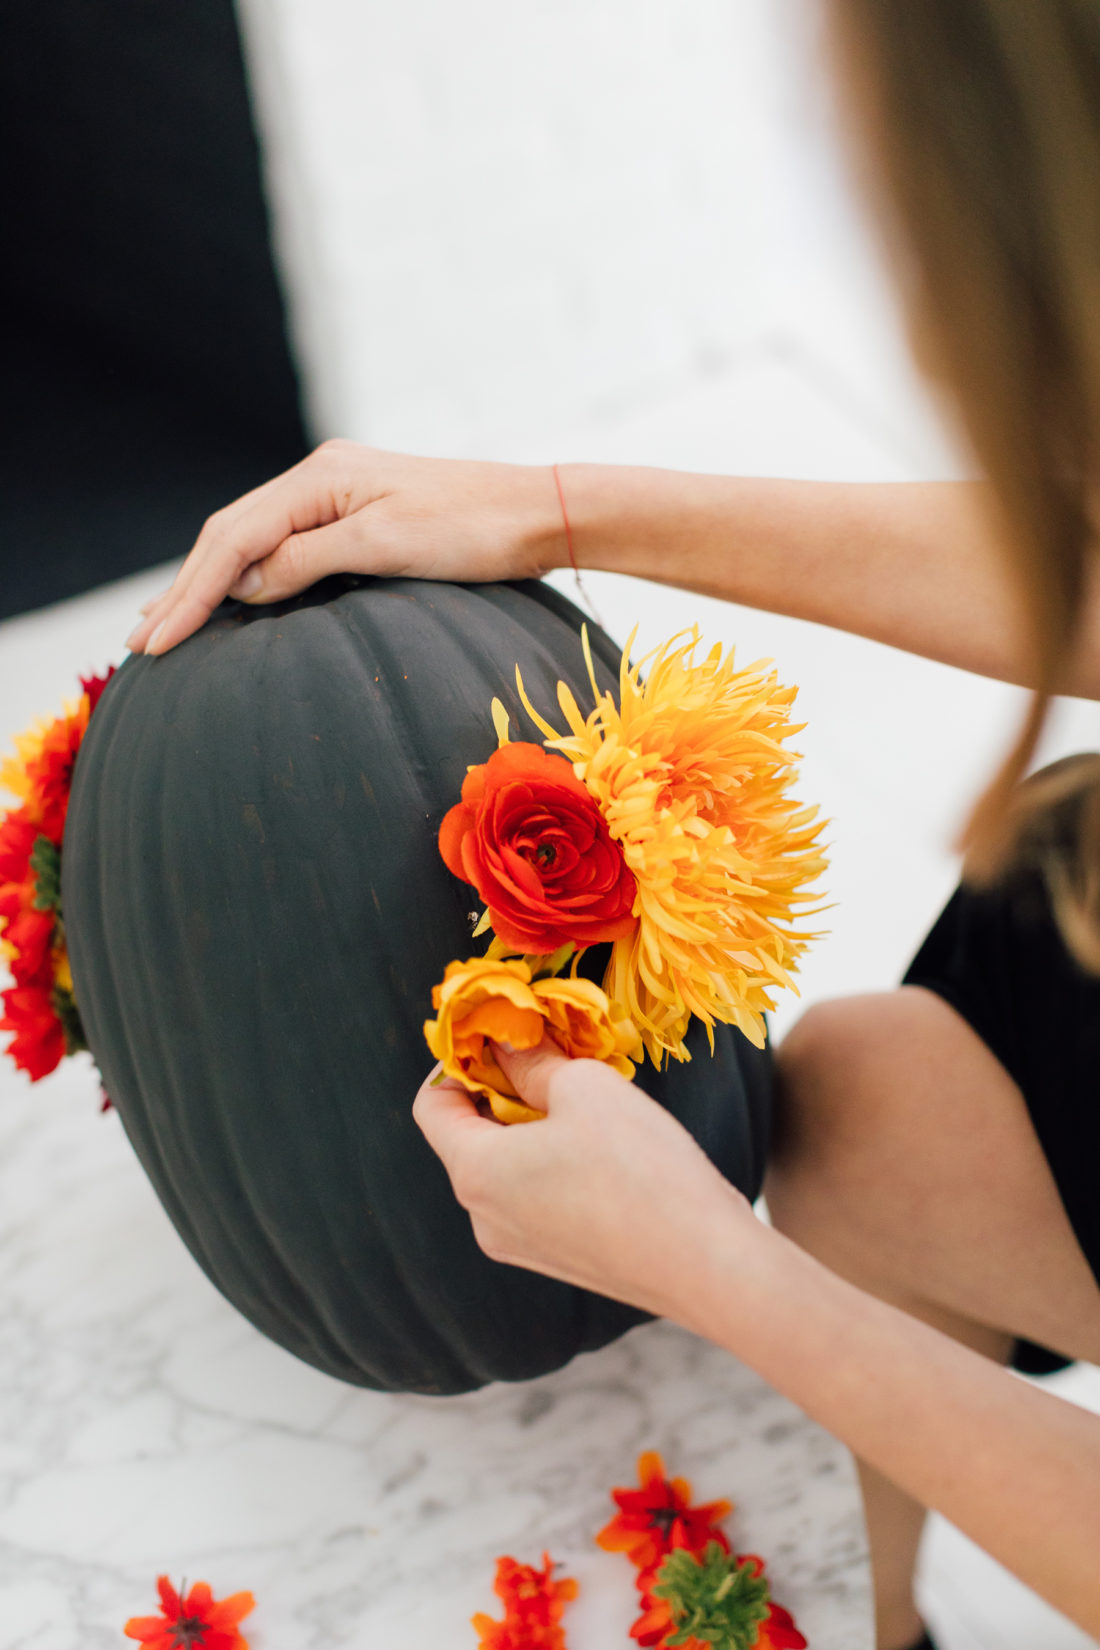 Eva Amurri Martino puts the finishing touches on her DIY faux floral pumpkins